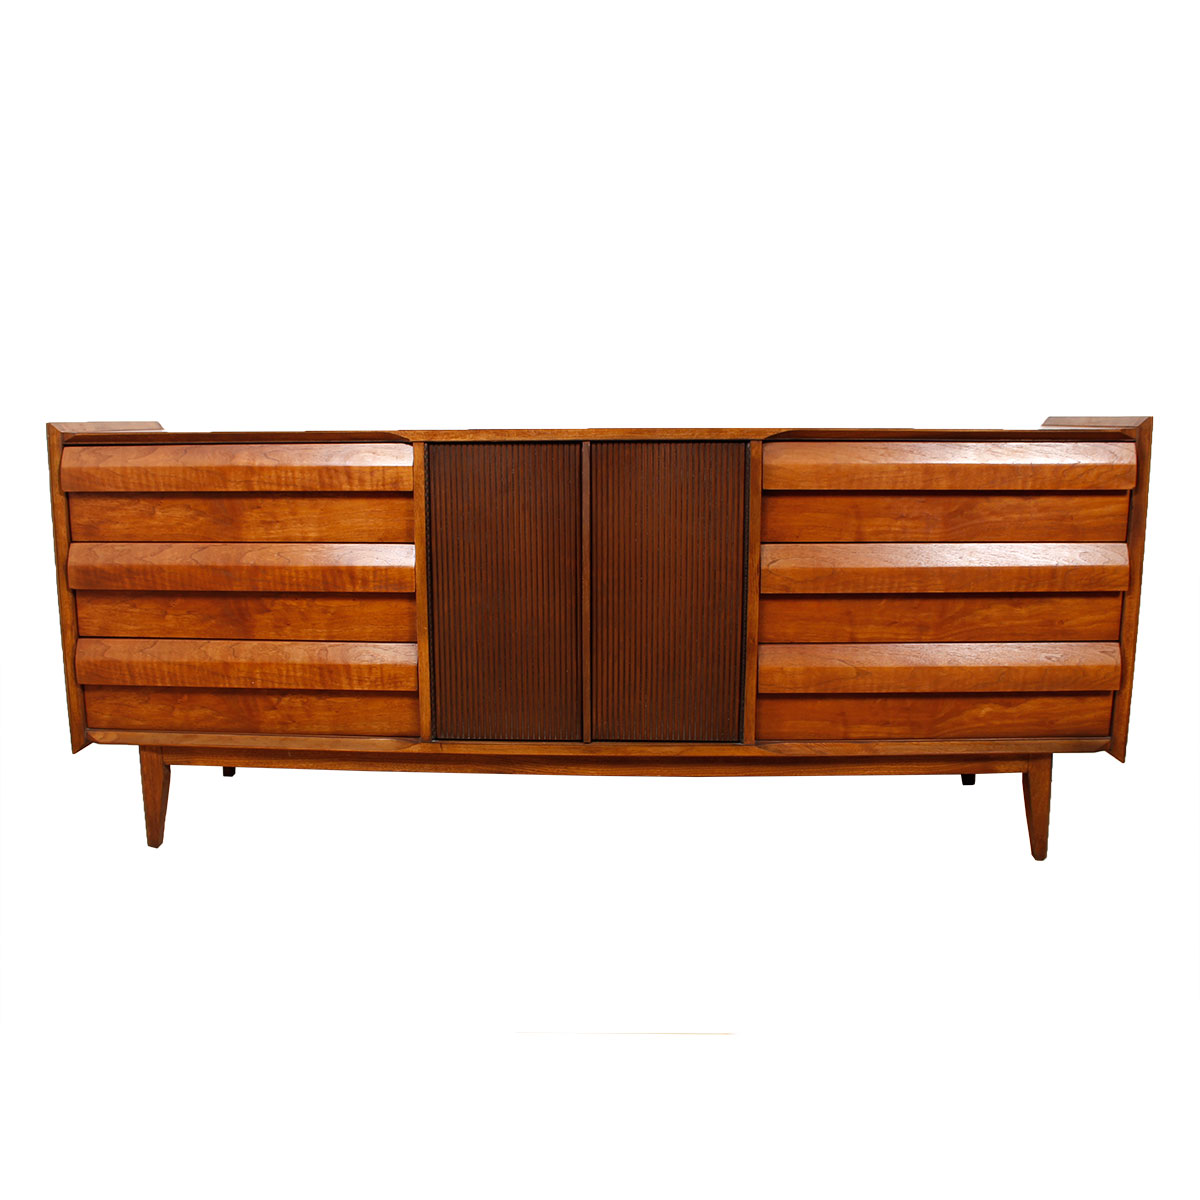 Shingle Front Walnut Dresser / Credenza